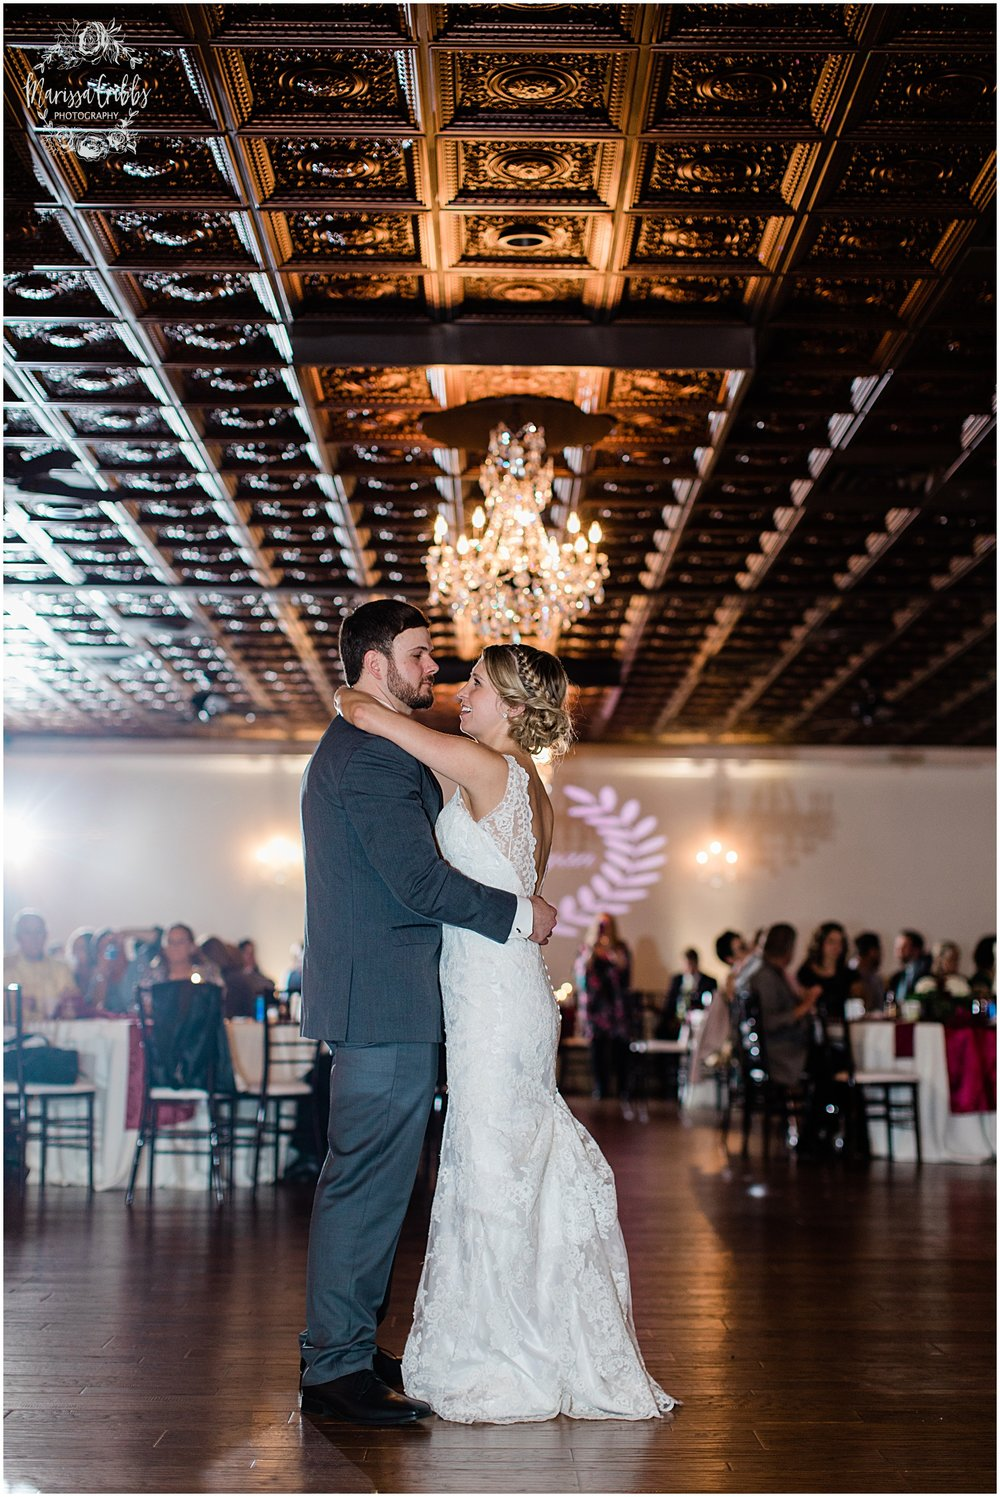 KAT & RYAN MARRIED | PAVILION EVENT SPACE | MARISSA CRIBBS PHOTOGRAPHY_4614.jpg